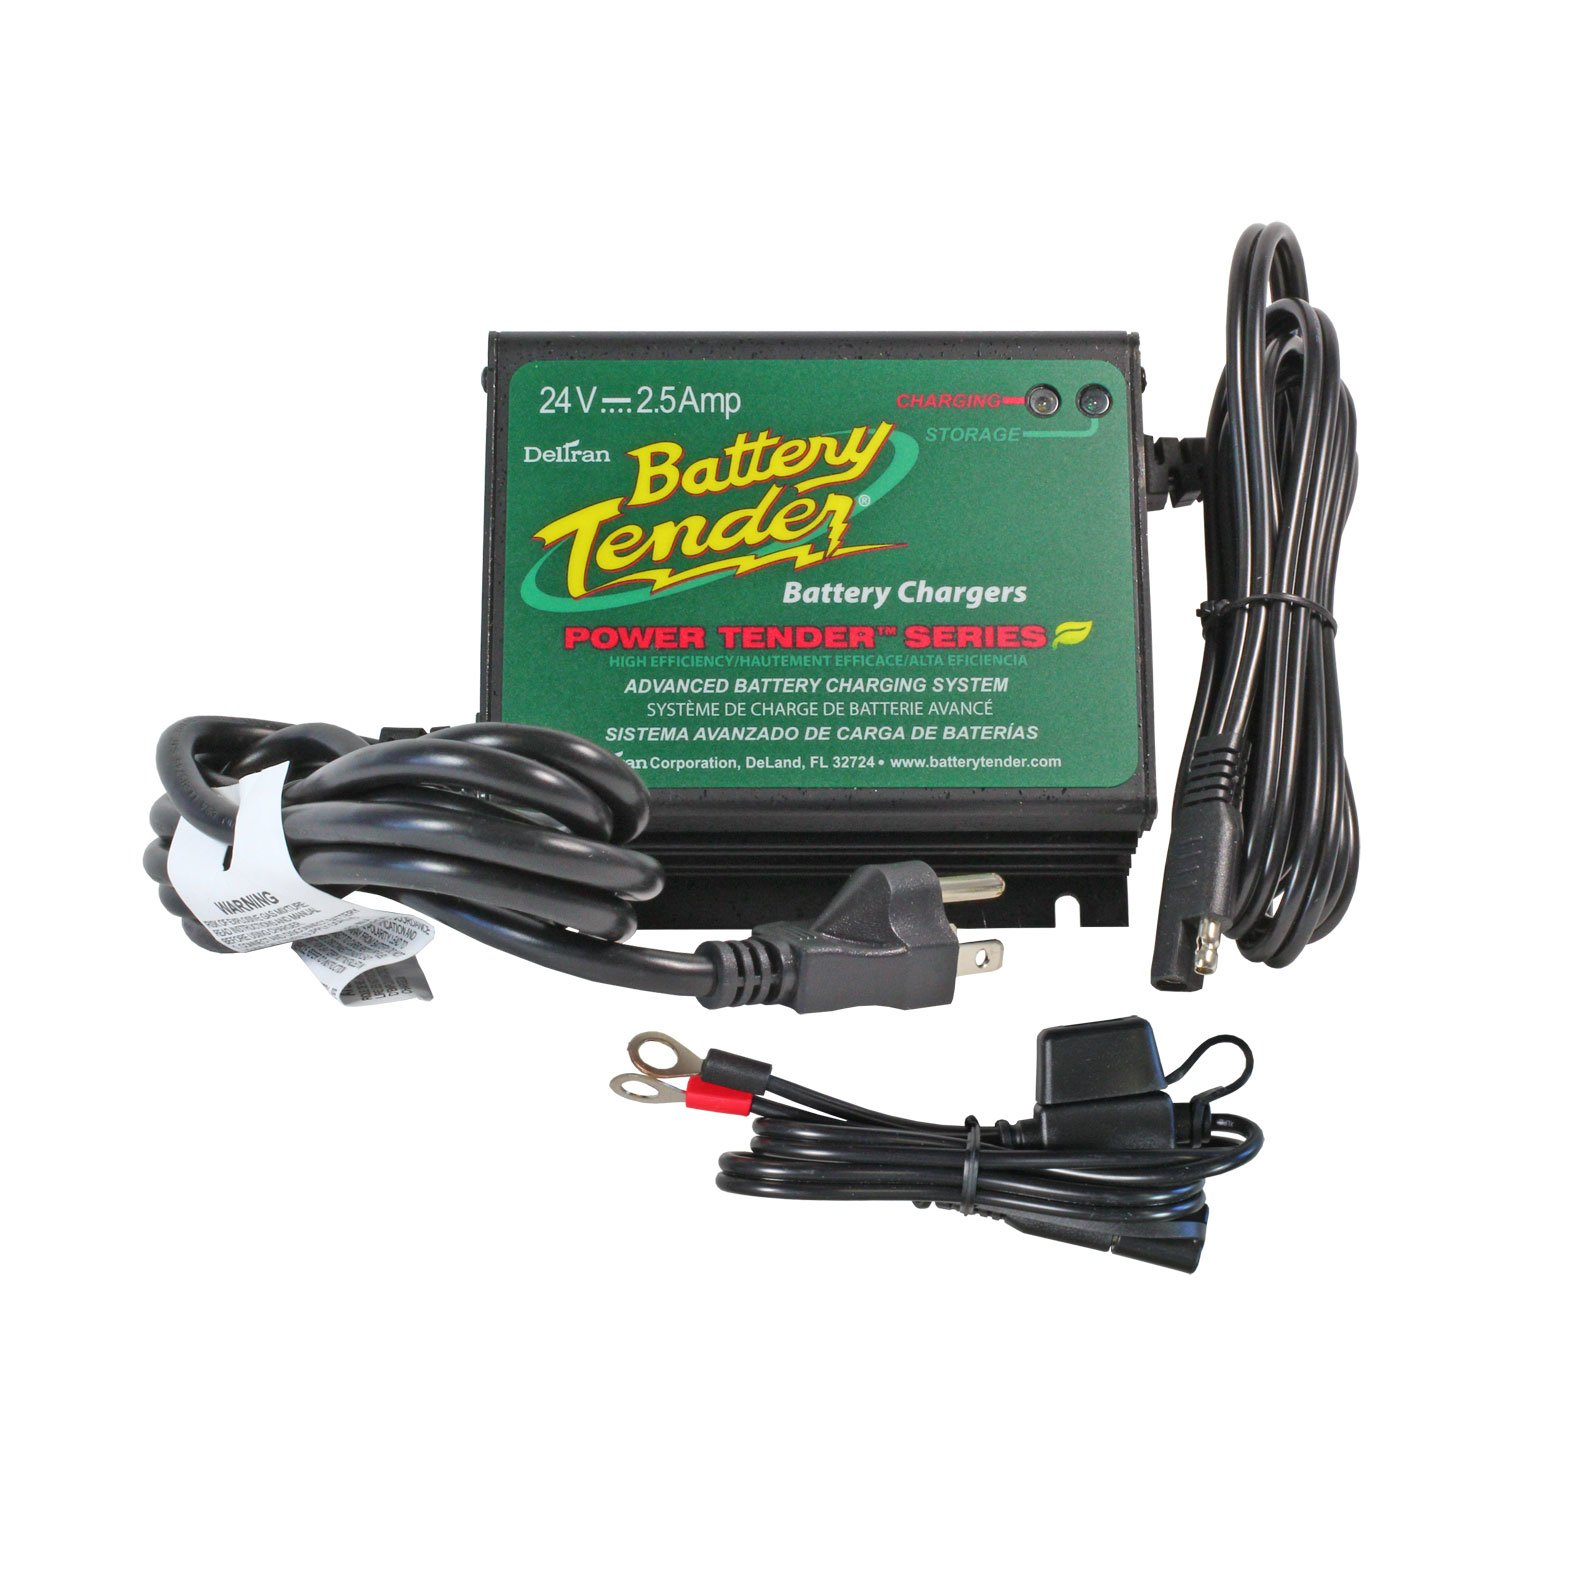 Battery Tender 24 Volt 25 Amp Water Resistant Charger Sealed Lead Acid Dual Step Current Mode California Compliant Free Shipping